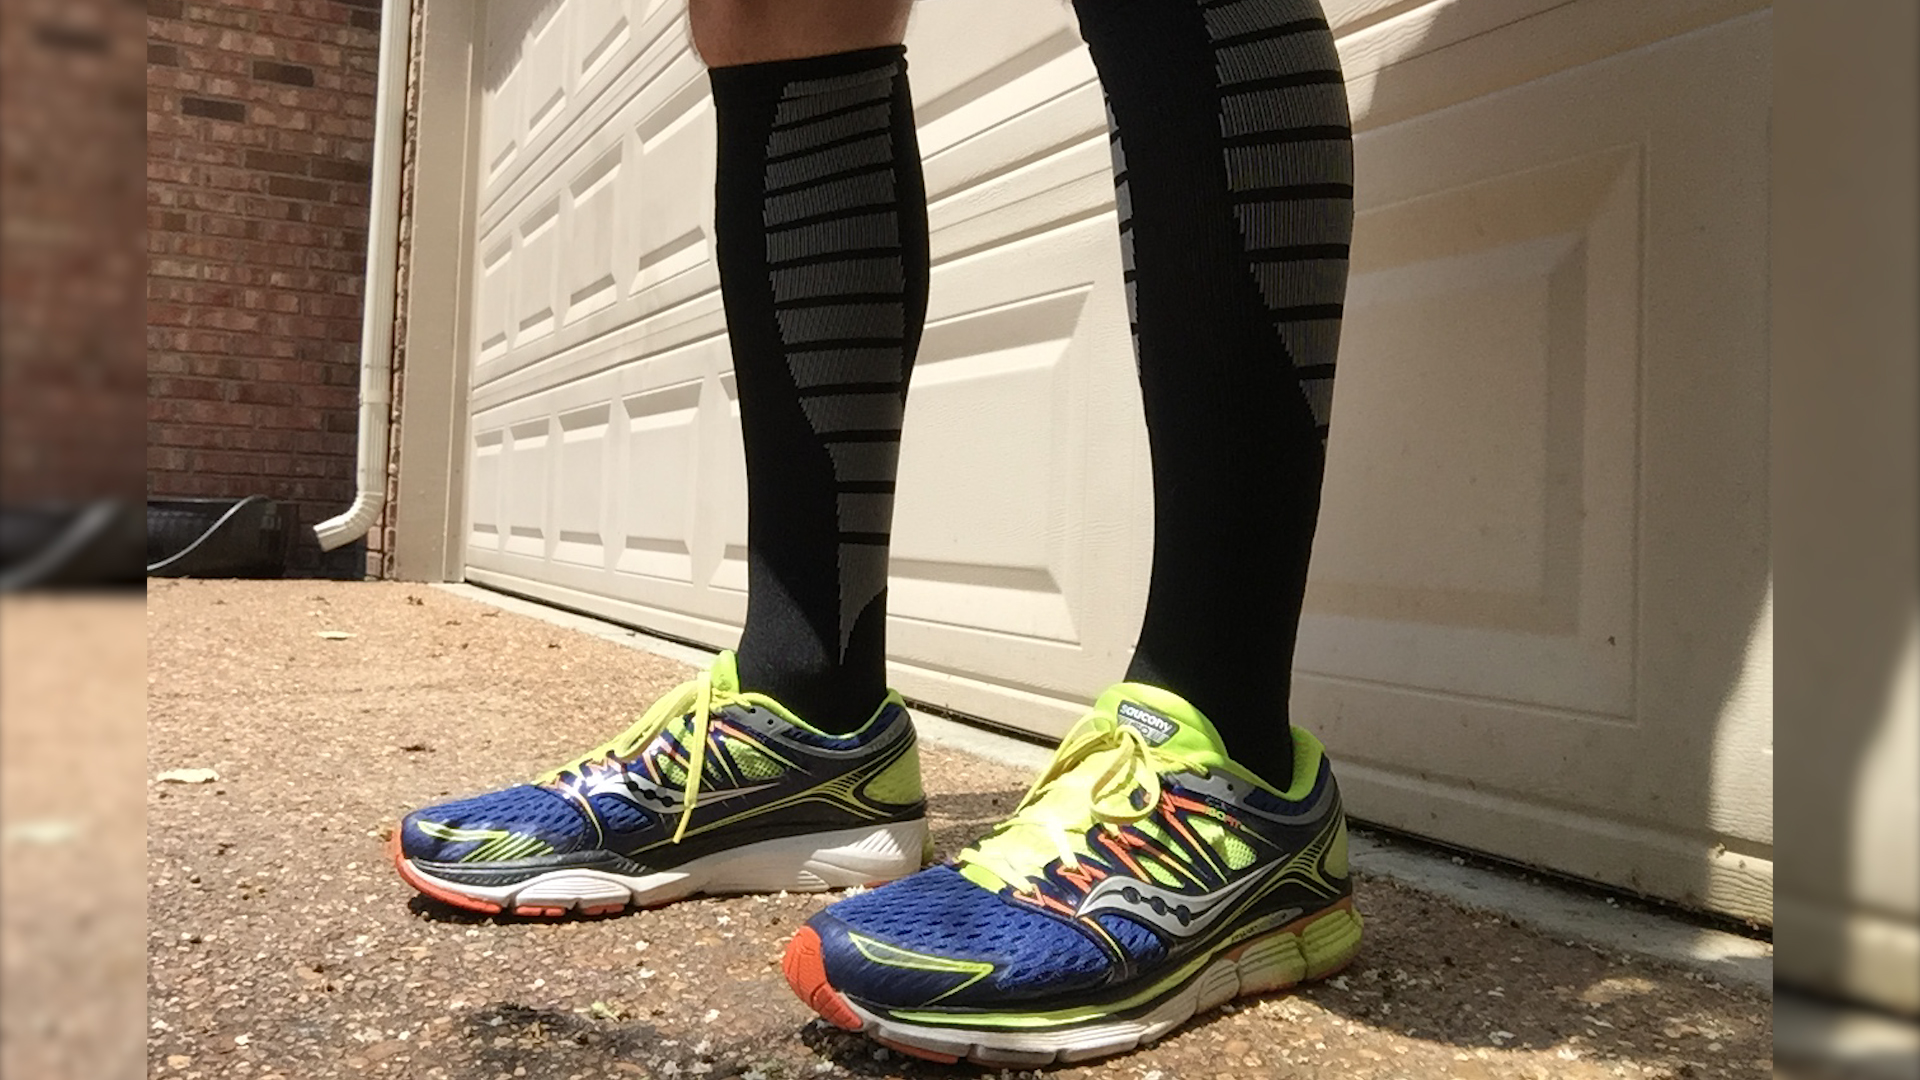 Striders Compression Socks from Striders, ETC.